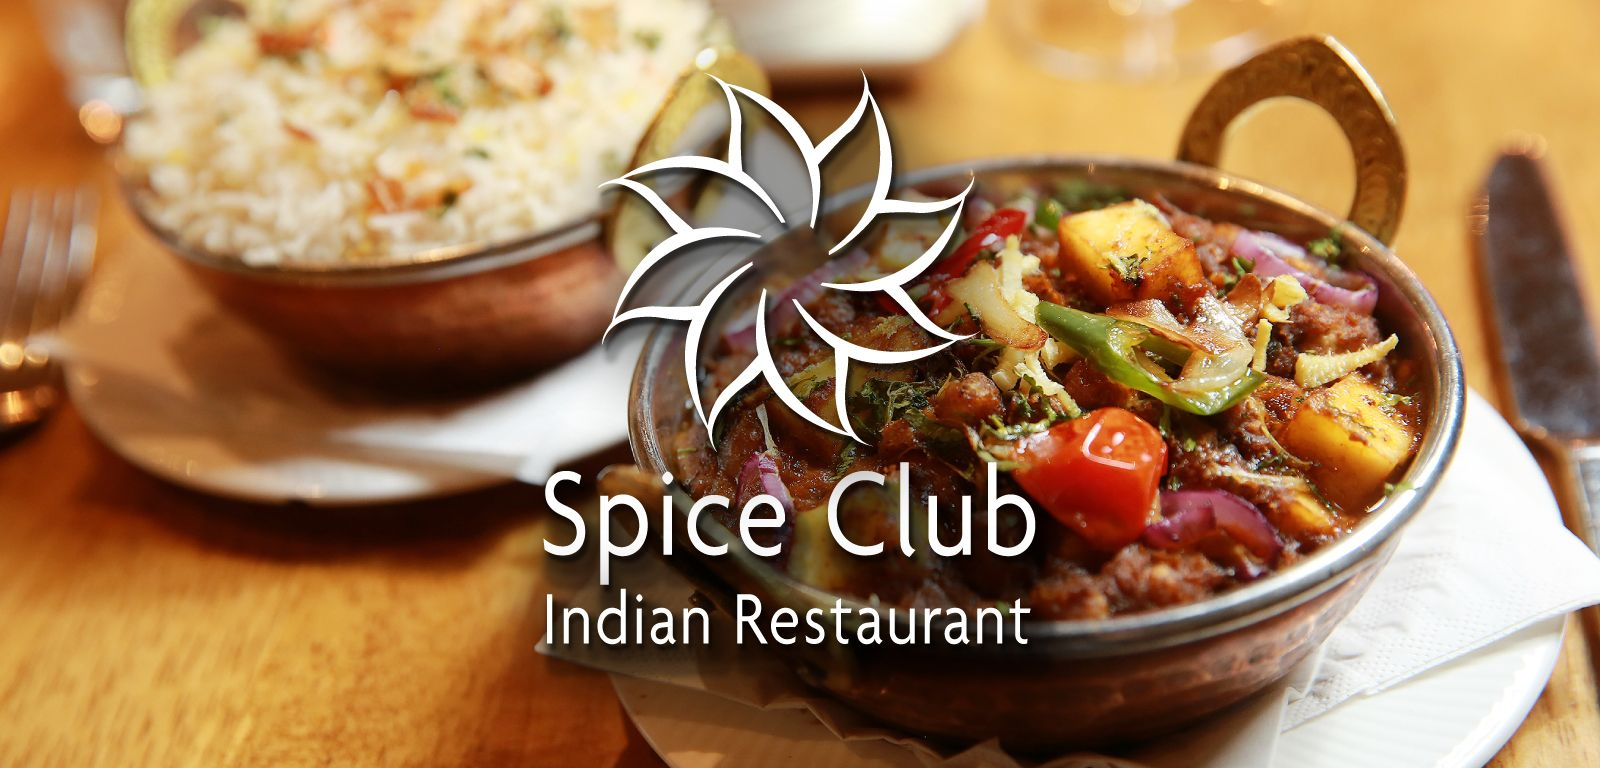 Spice-Cub-website-banner